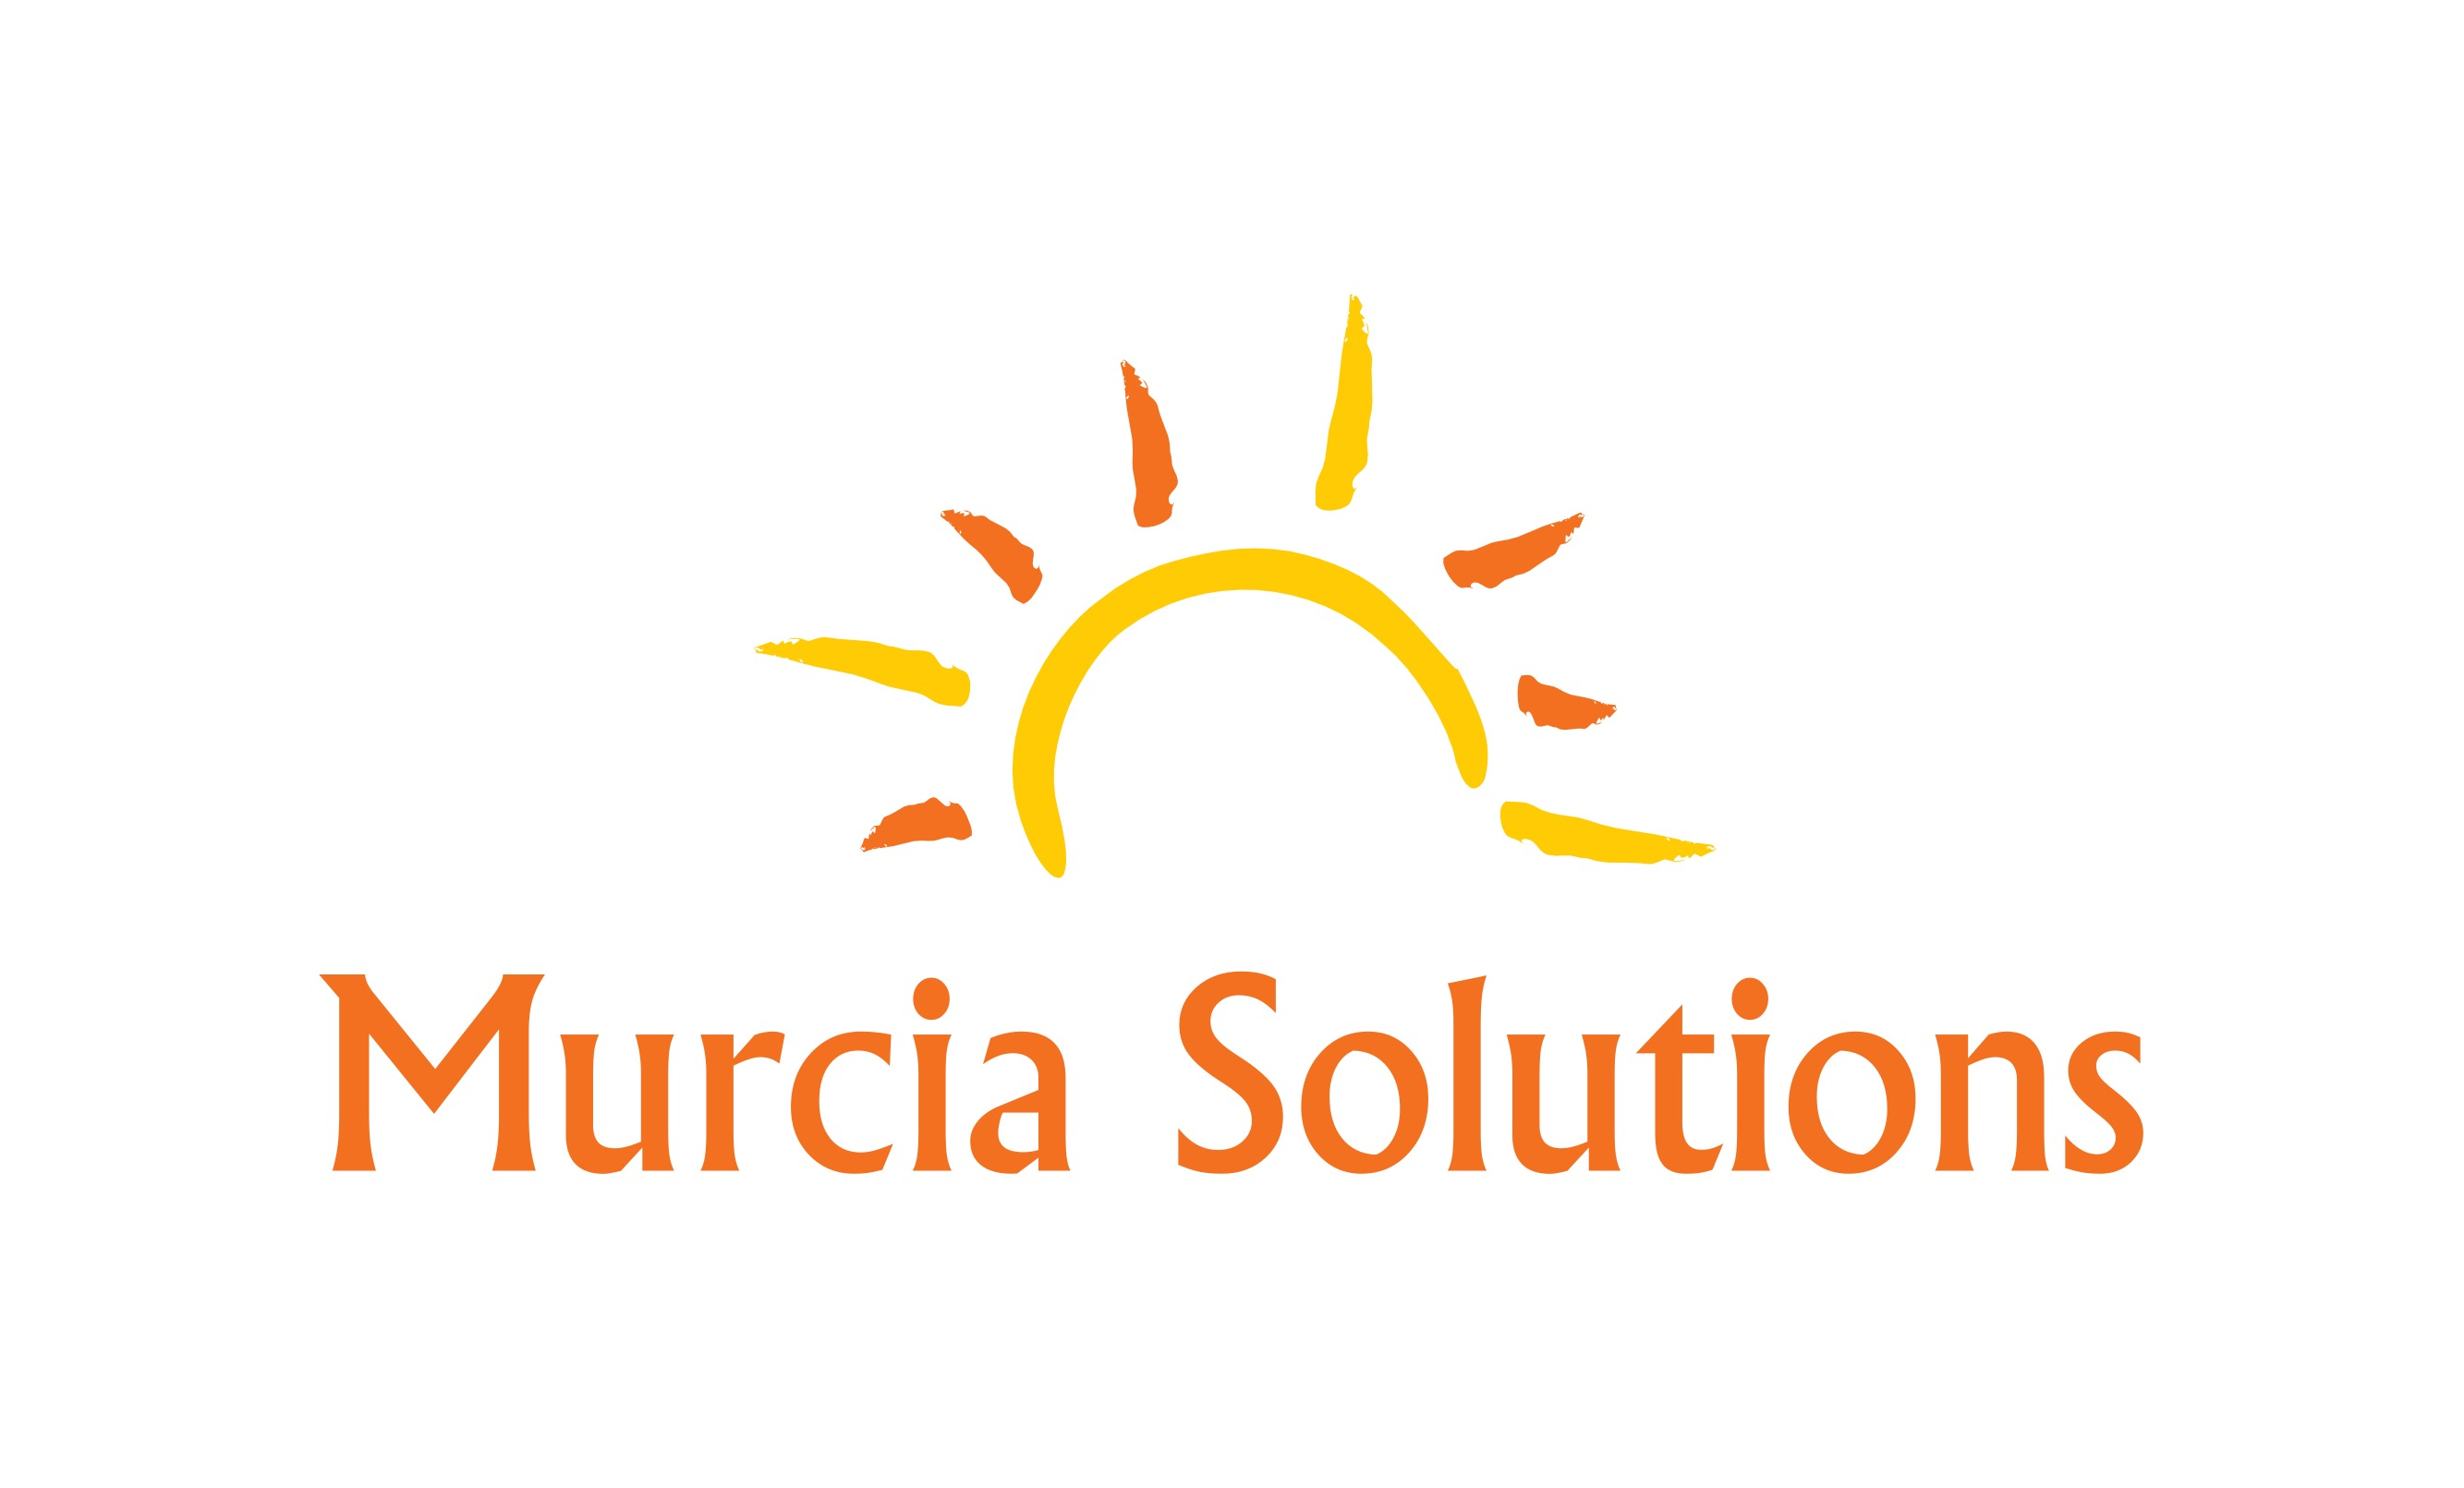 Murcia Solutions